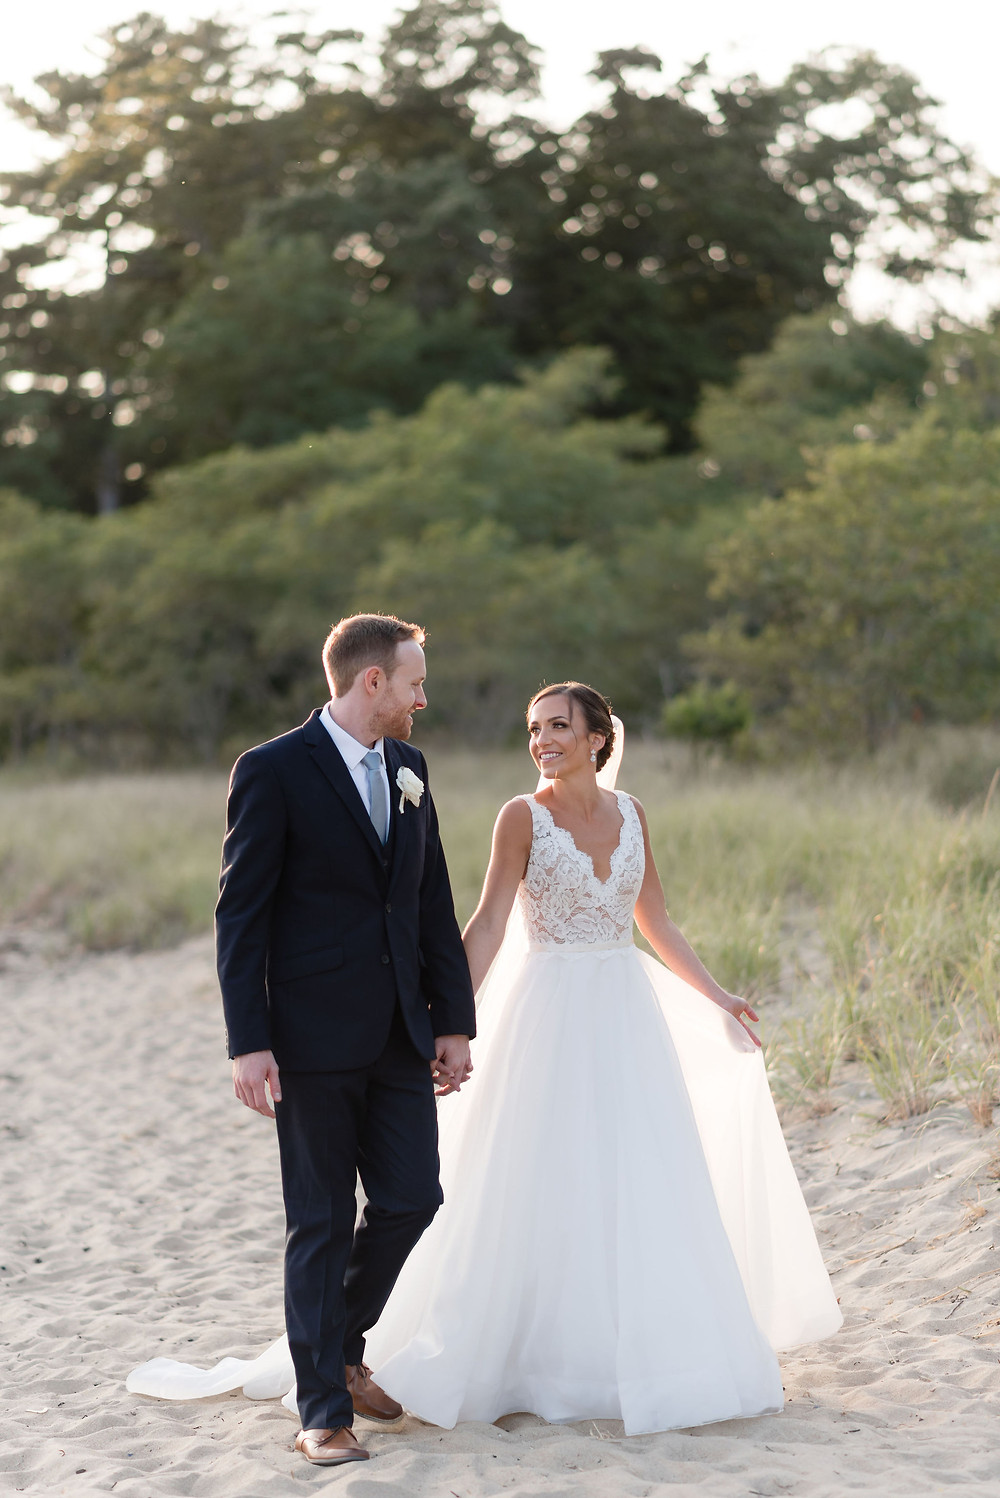 wedding photo on beach behind Tupper Manor during sunset